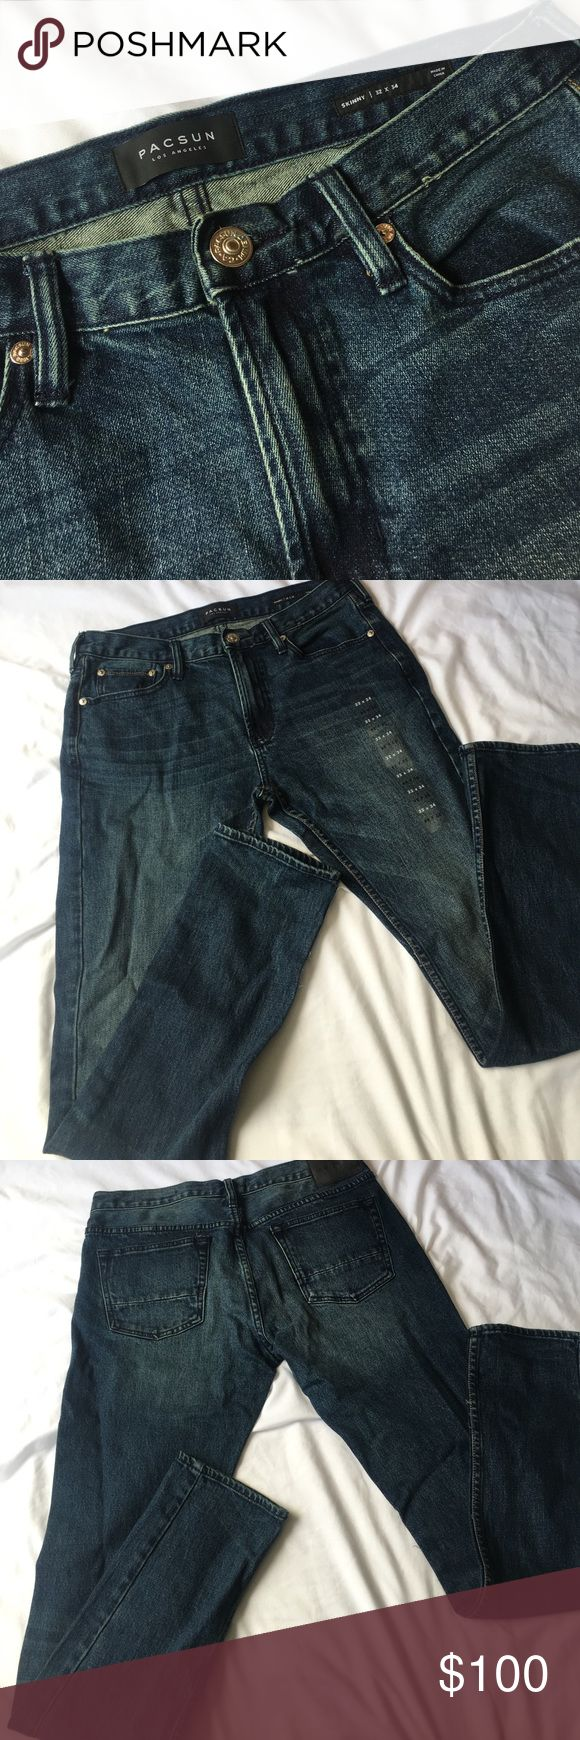 Pacsun jeans BRAND NEW! Brand new pacsun jeans.. 32X34. Color: medium indigo.. PRICE IS NEGOTIABLE! As long as it's reasonable. PacSun Jeans Skinny